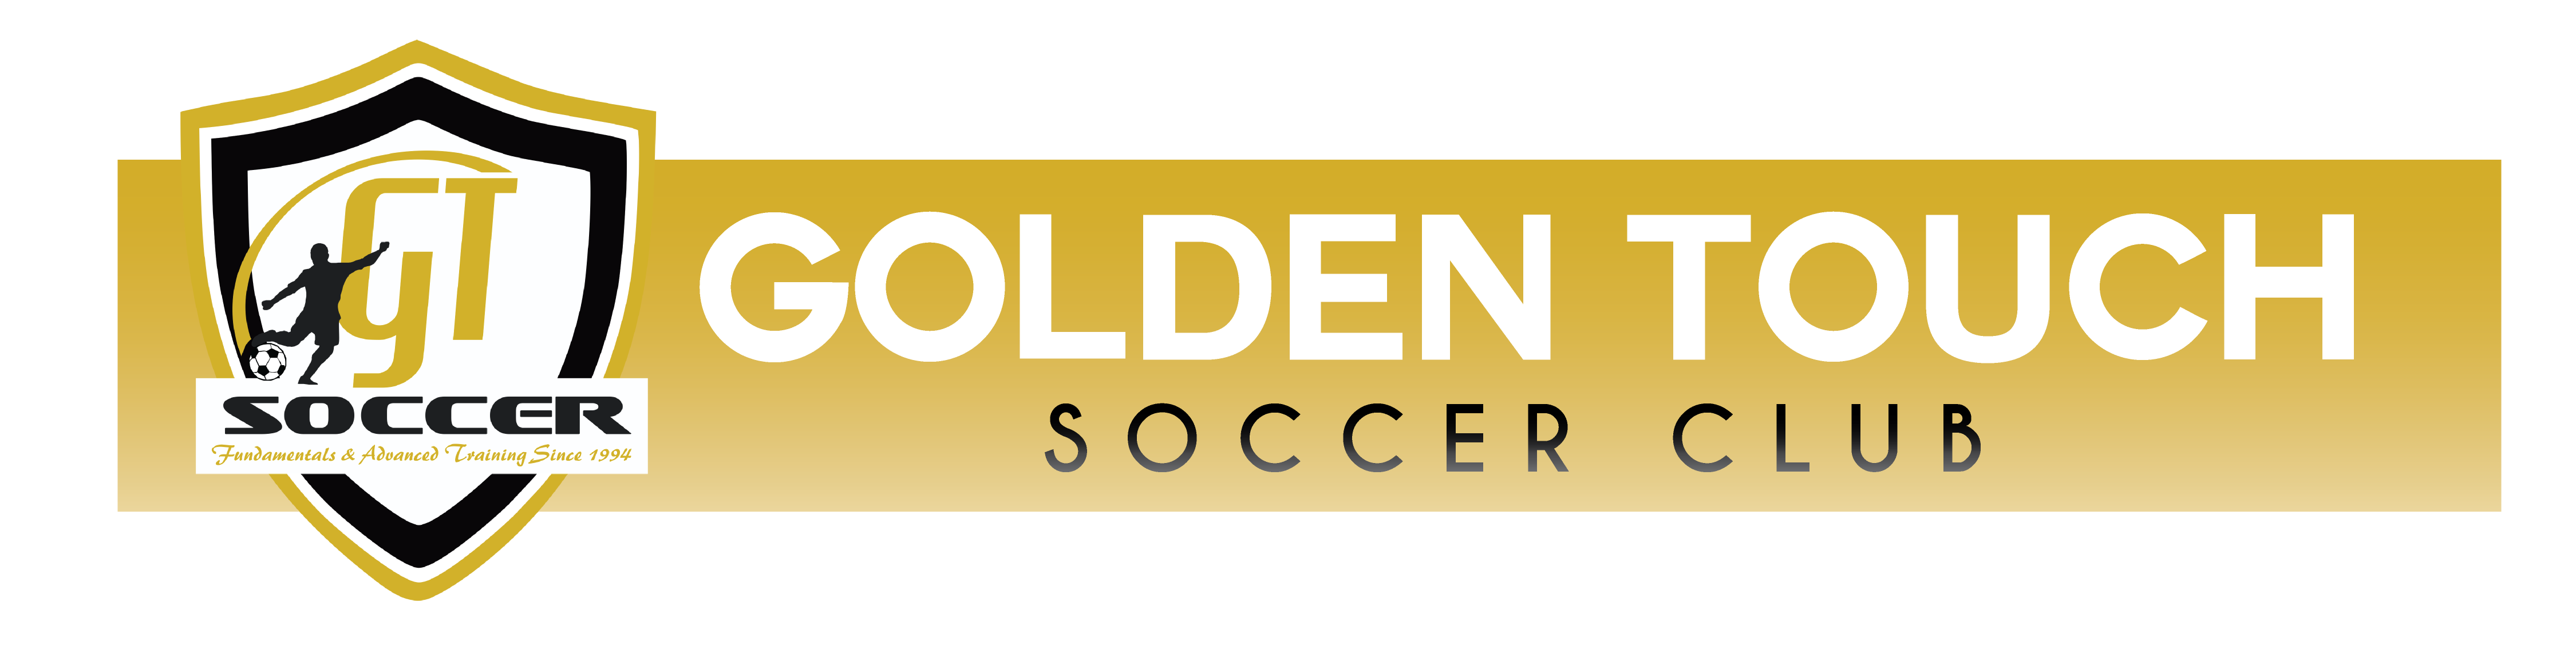 Goldentouch header 01